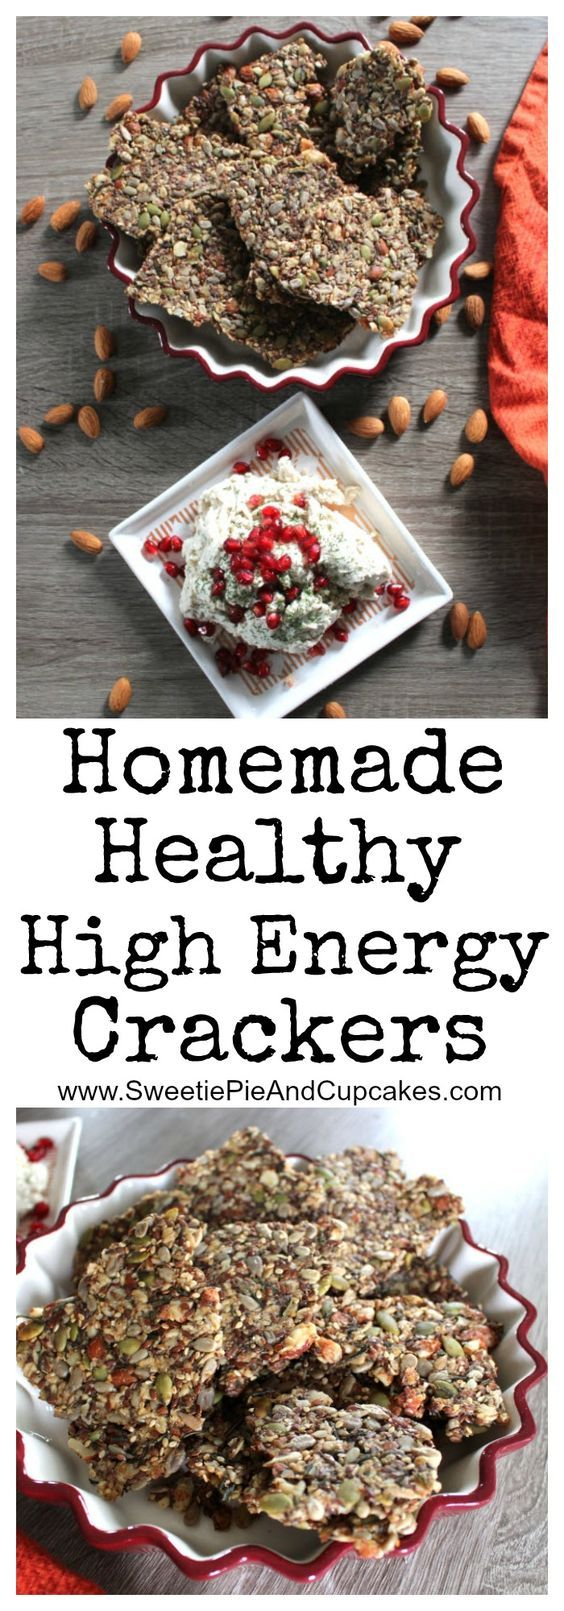 These Homemade Healthy High Energy Crackers are made with almonds, pumpkin seeds, chia seeds, sesame seeds, sunflower seeds, flax seeds, oats, psyllium seed husks, maple syrup and coconut oil. They are a great vegan treat and are packed with tons of nutritional leaving you with high energy. These crackers can be flavored with any of your favorite nuts, seeds or spices. Serve them as an appetizer or snack before your holiday meal or bring them with you hiking, camping, or for long road trips.